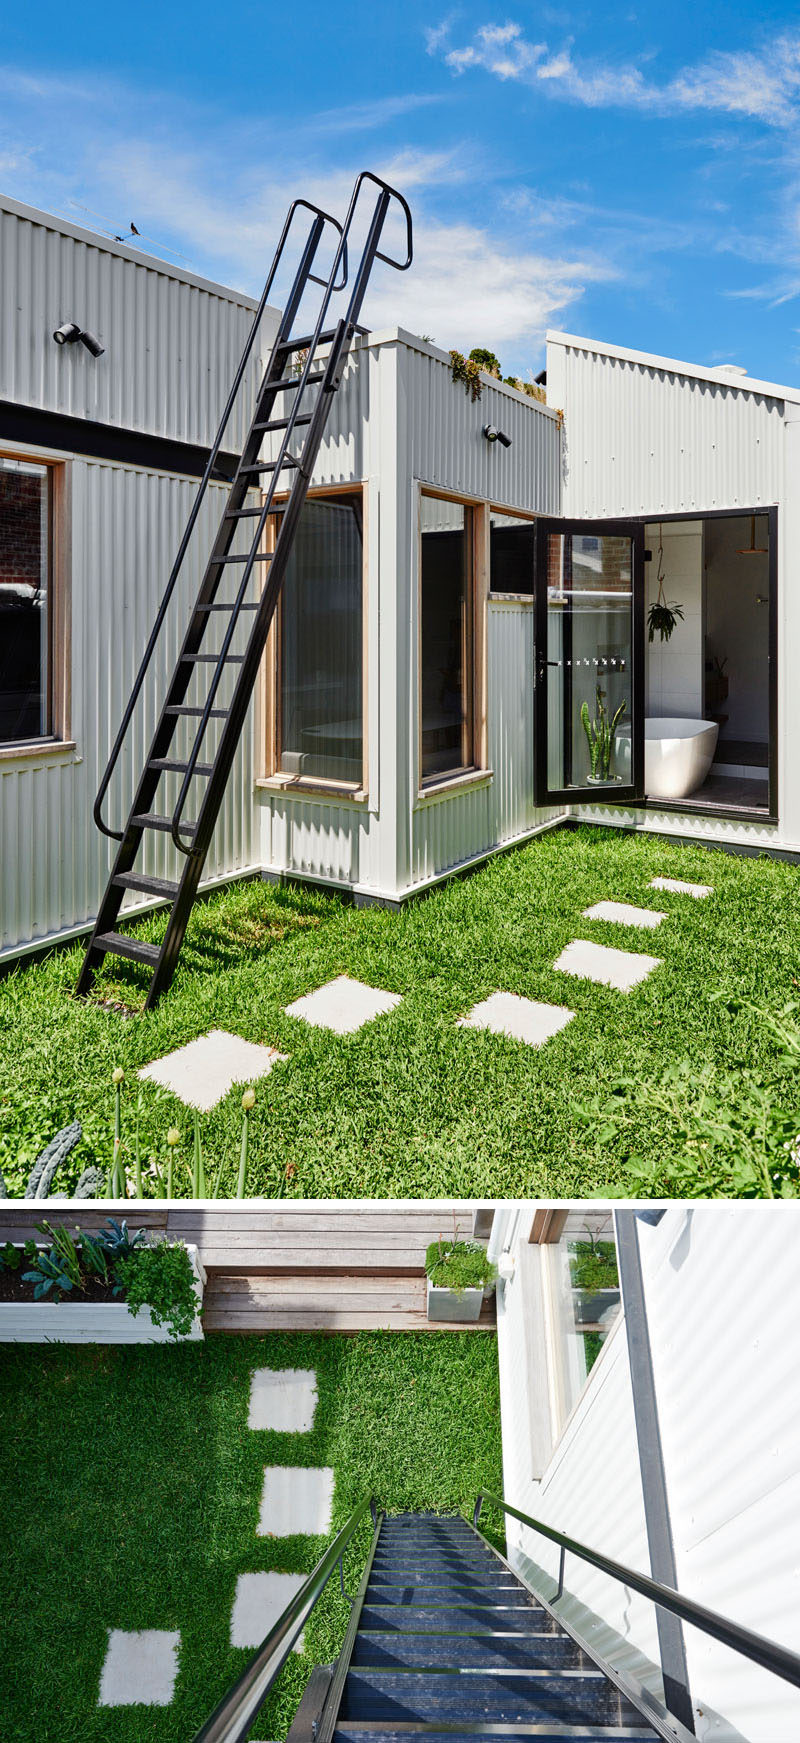 This renovated house has a small grassy area with stepping stones that lead to a steel ladder that goes up onto the roof. #Ladder #Landscaping